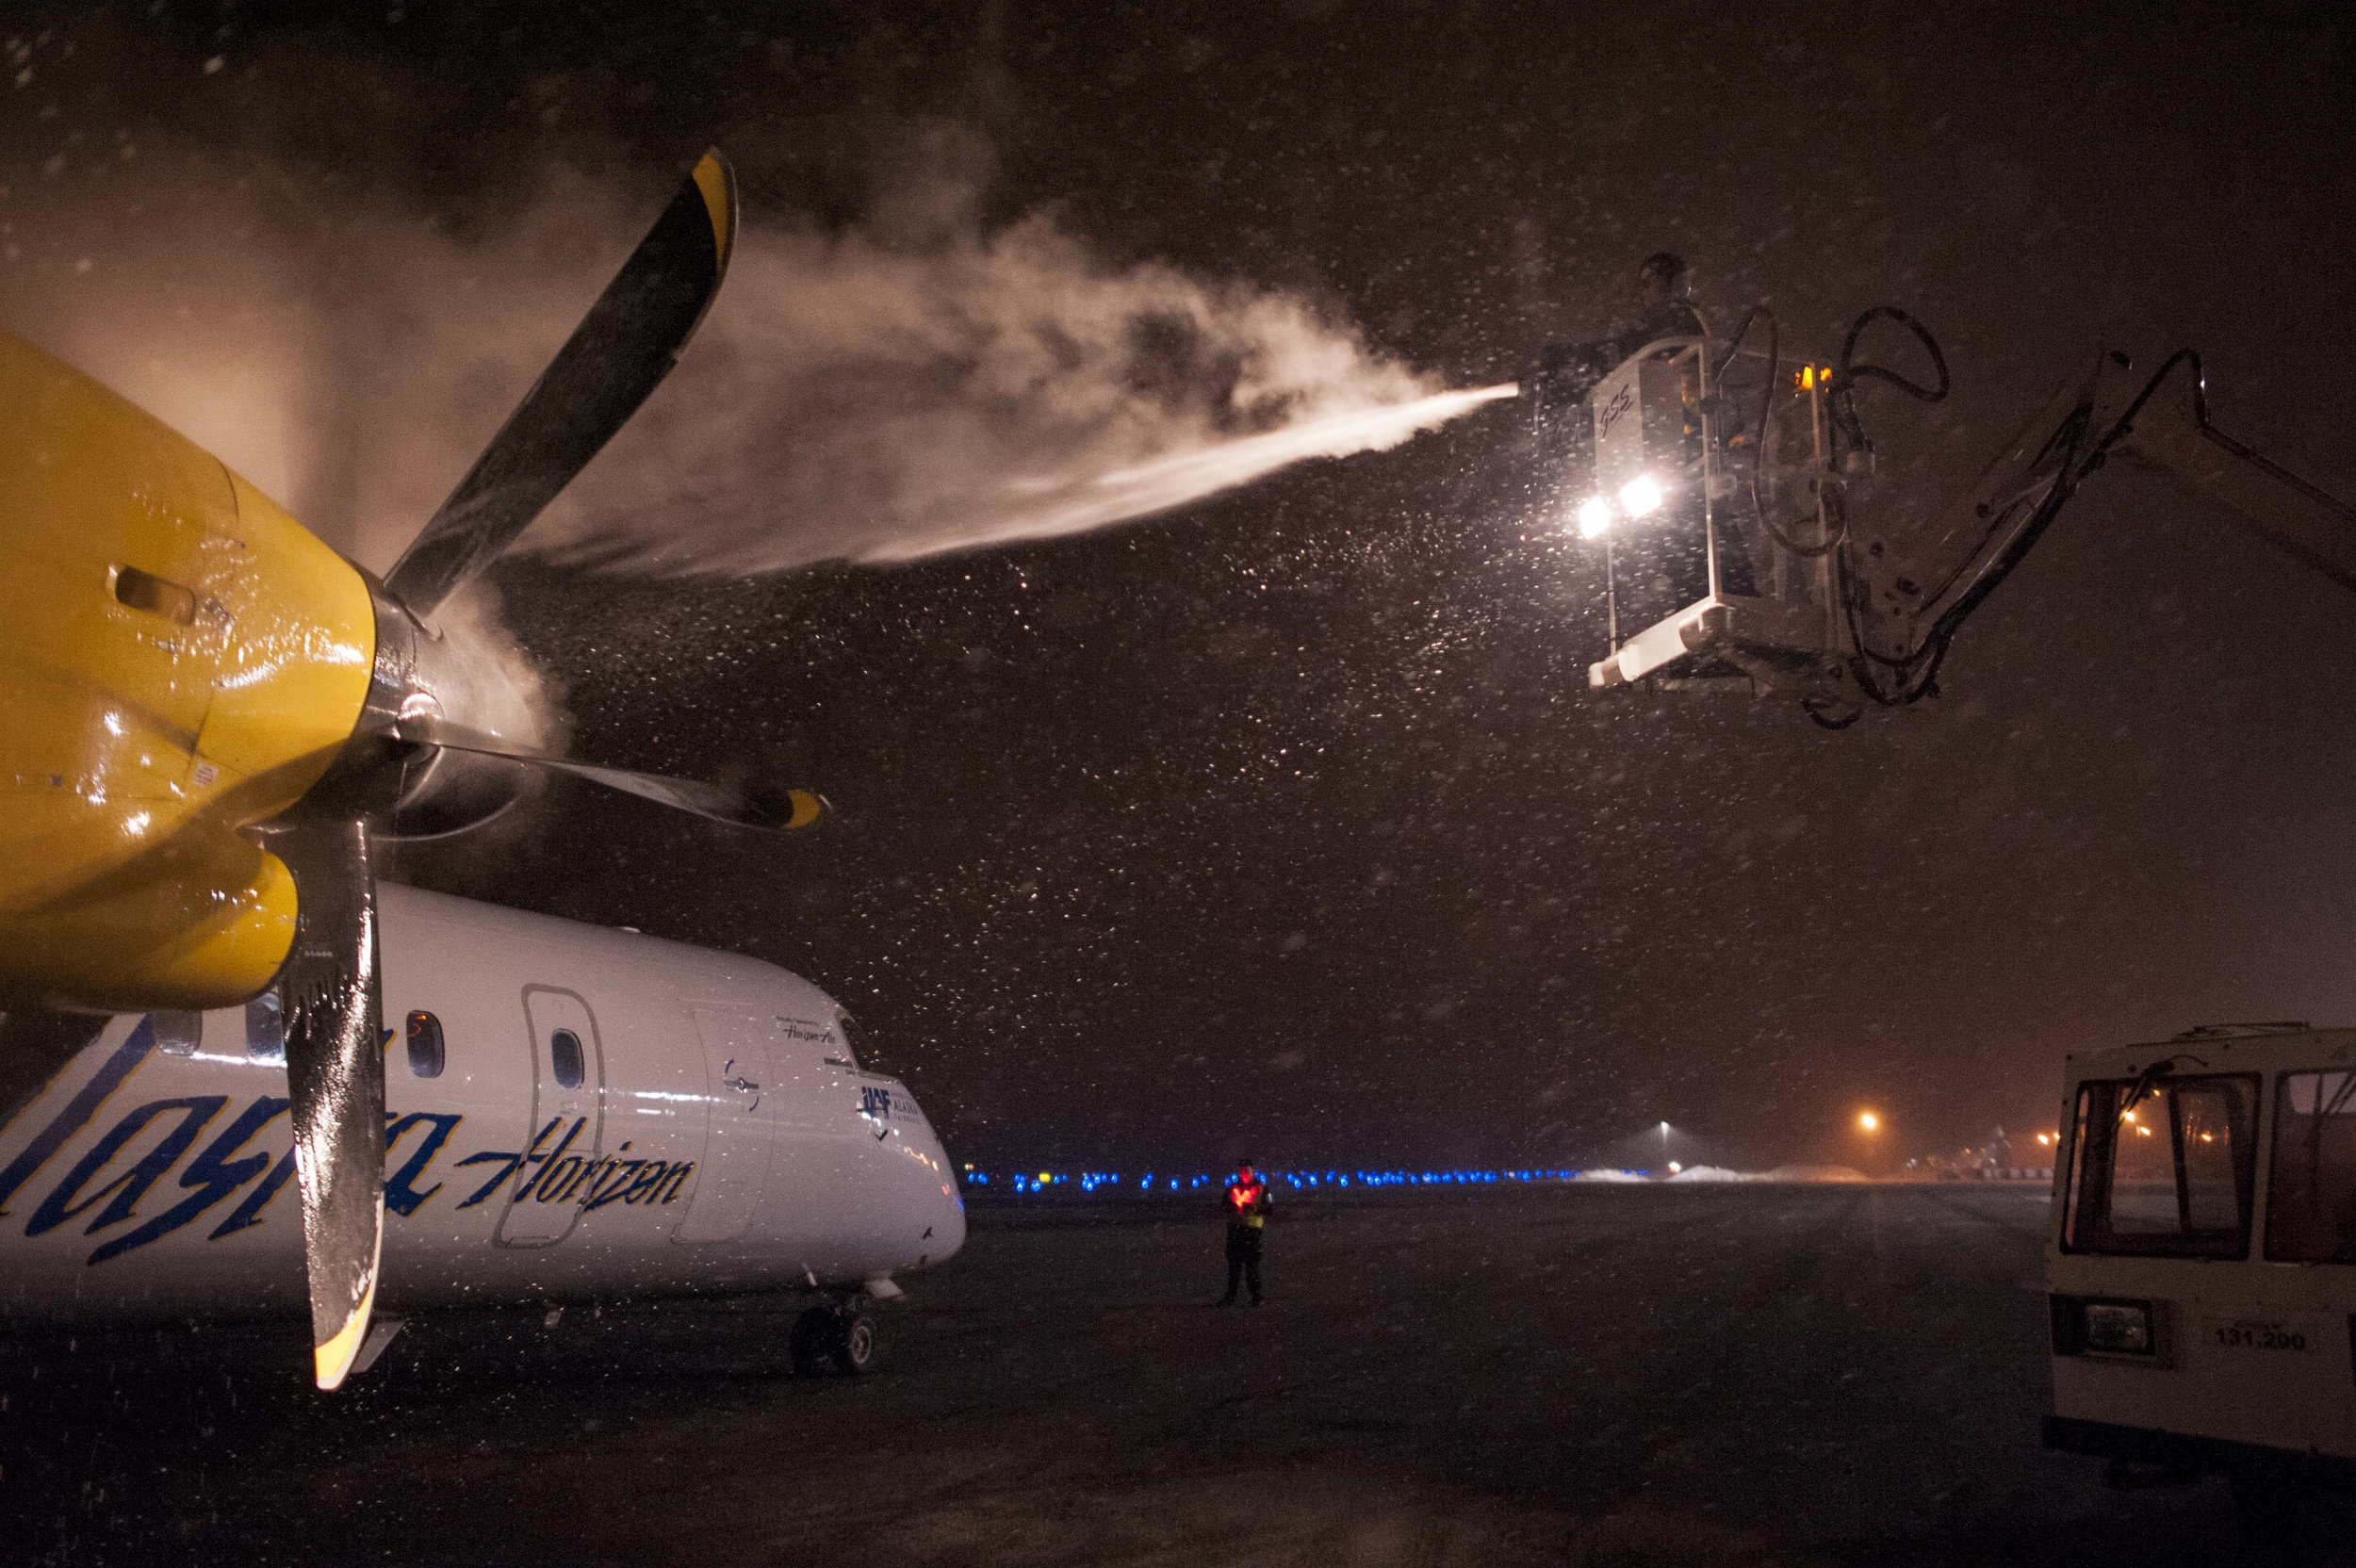 A ramp agent at Bozeman Yellowstone International Airport deices a Q400 destined for Seattle, Wash. Sunday, Feb. 26, 2017.